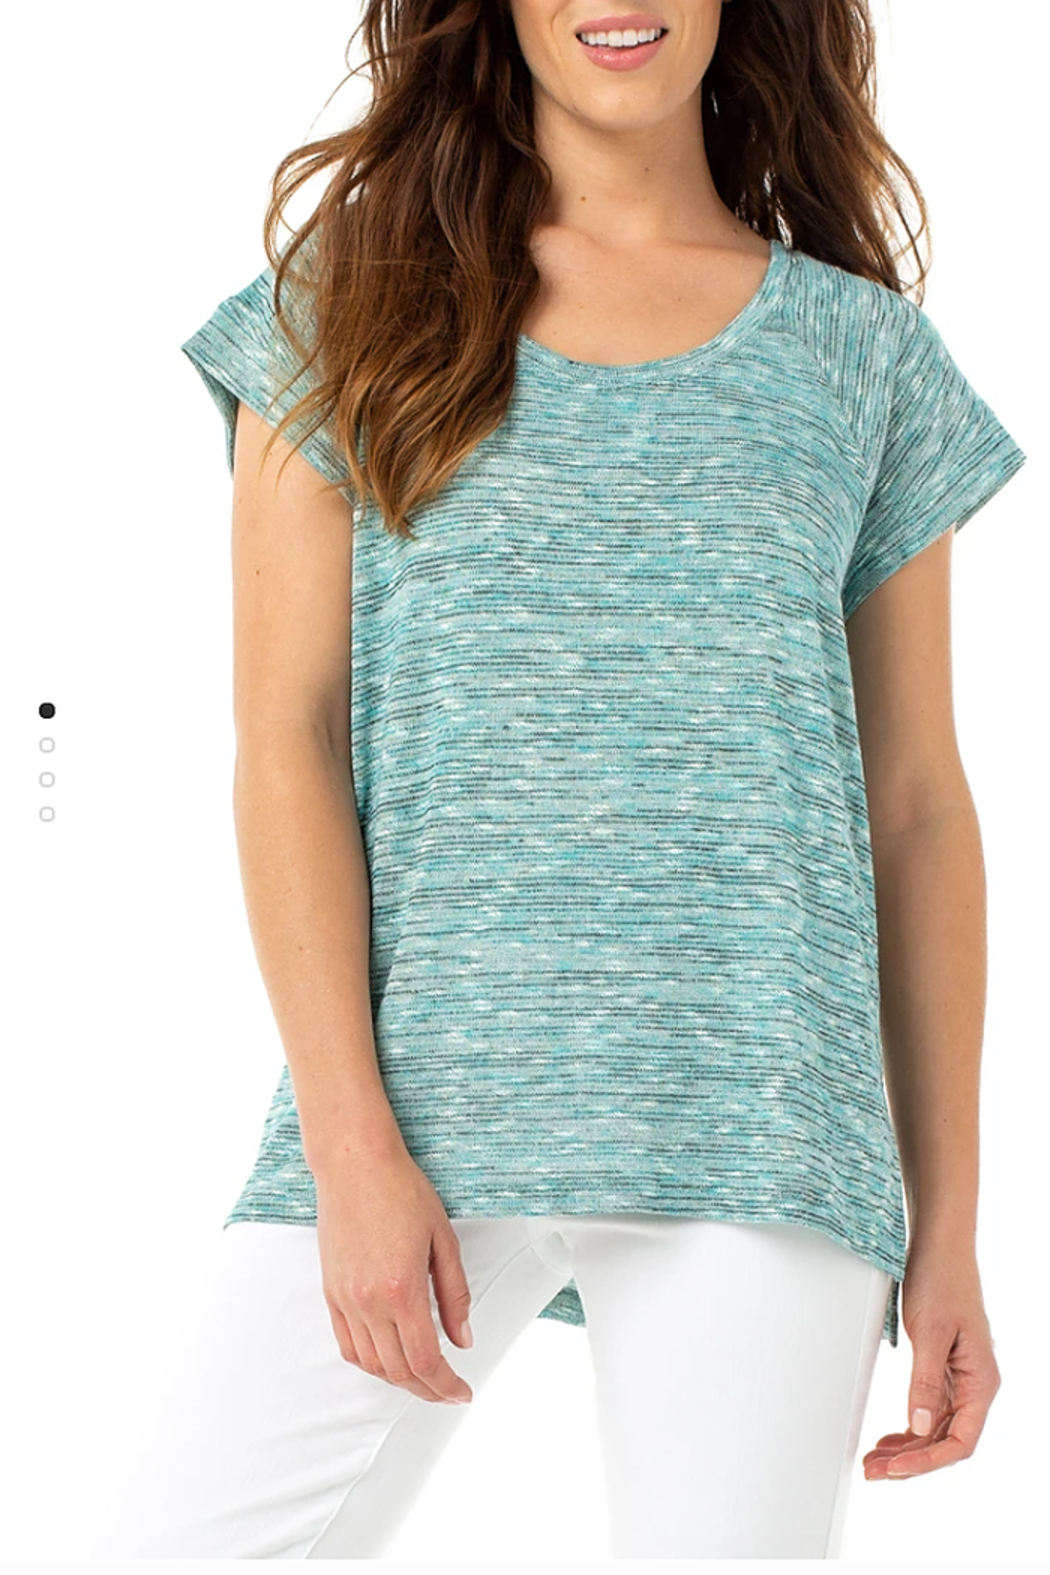 Liverpool Oversized Dolman Knit Top - Front Cropped Image